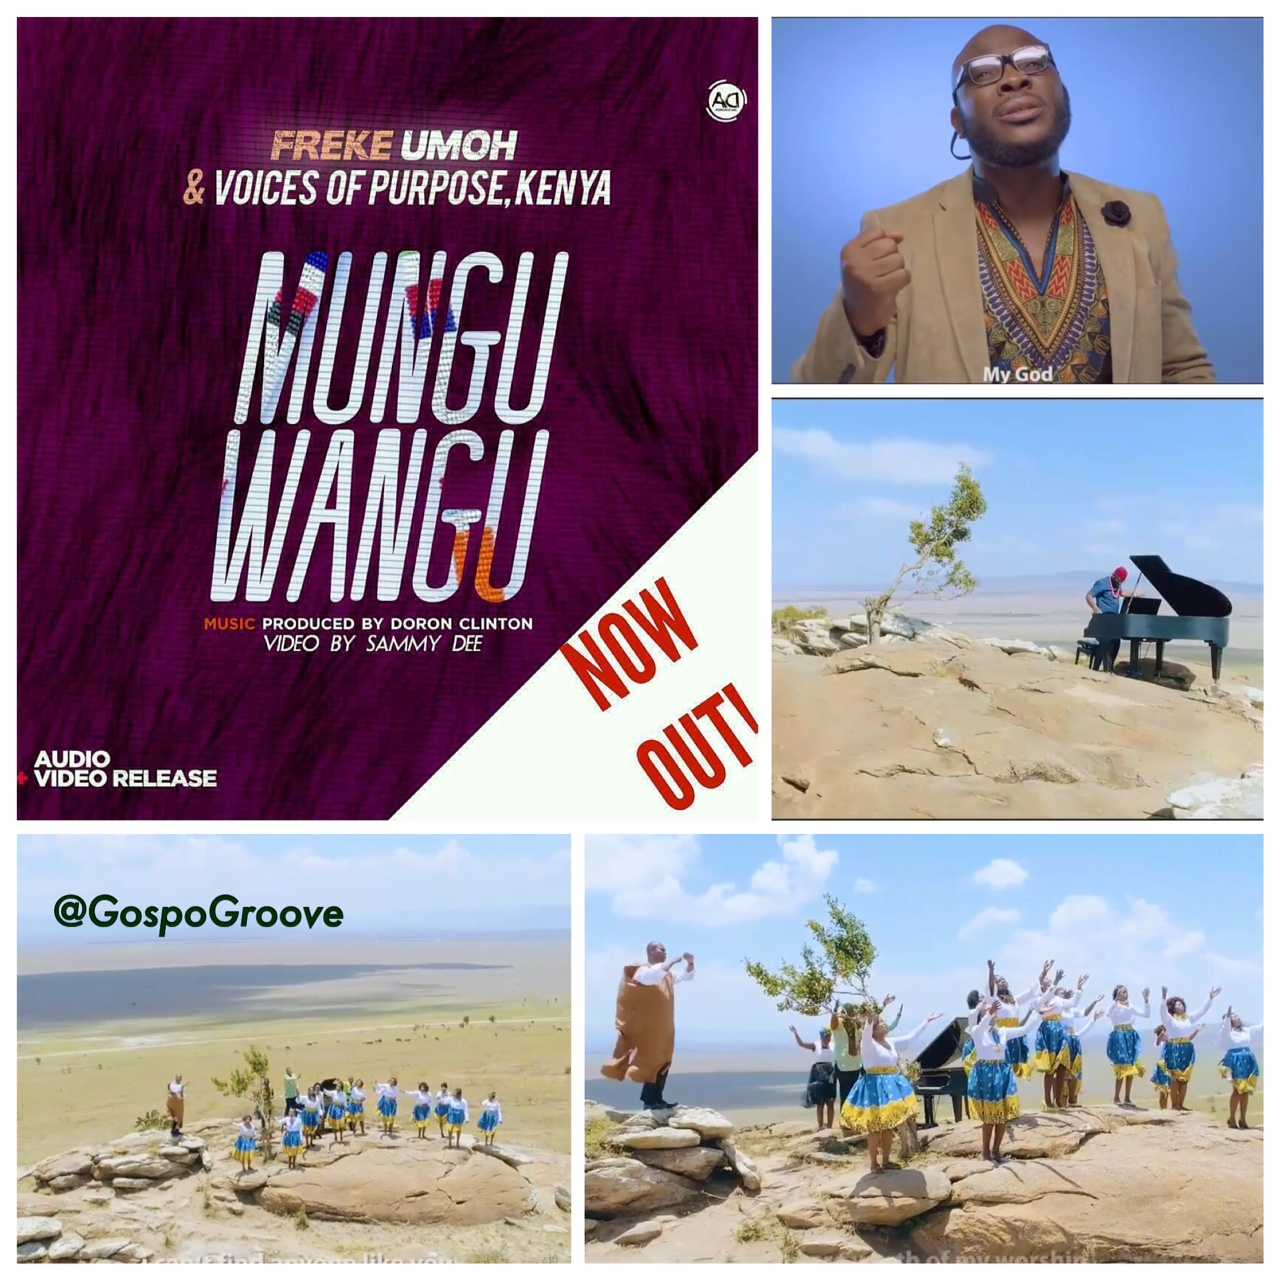 Music: Mungu Wangu ~ Freke Umoh & Kenya's Voice of Purpose [@Freke_Live]